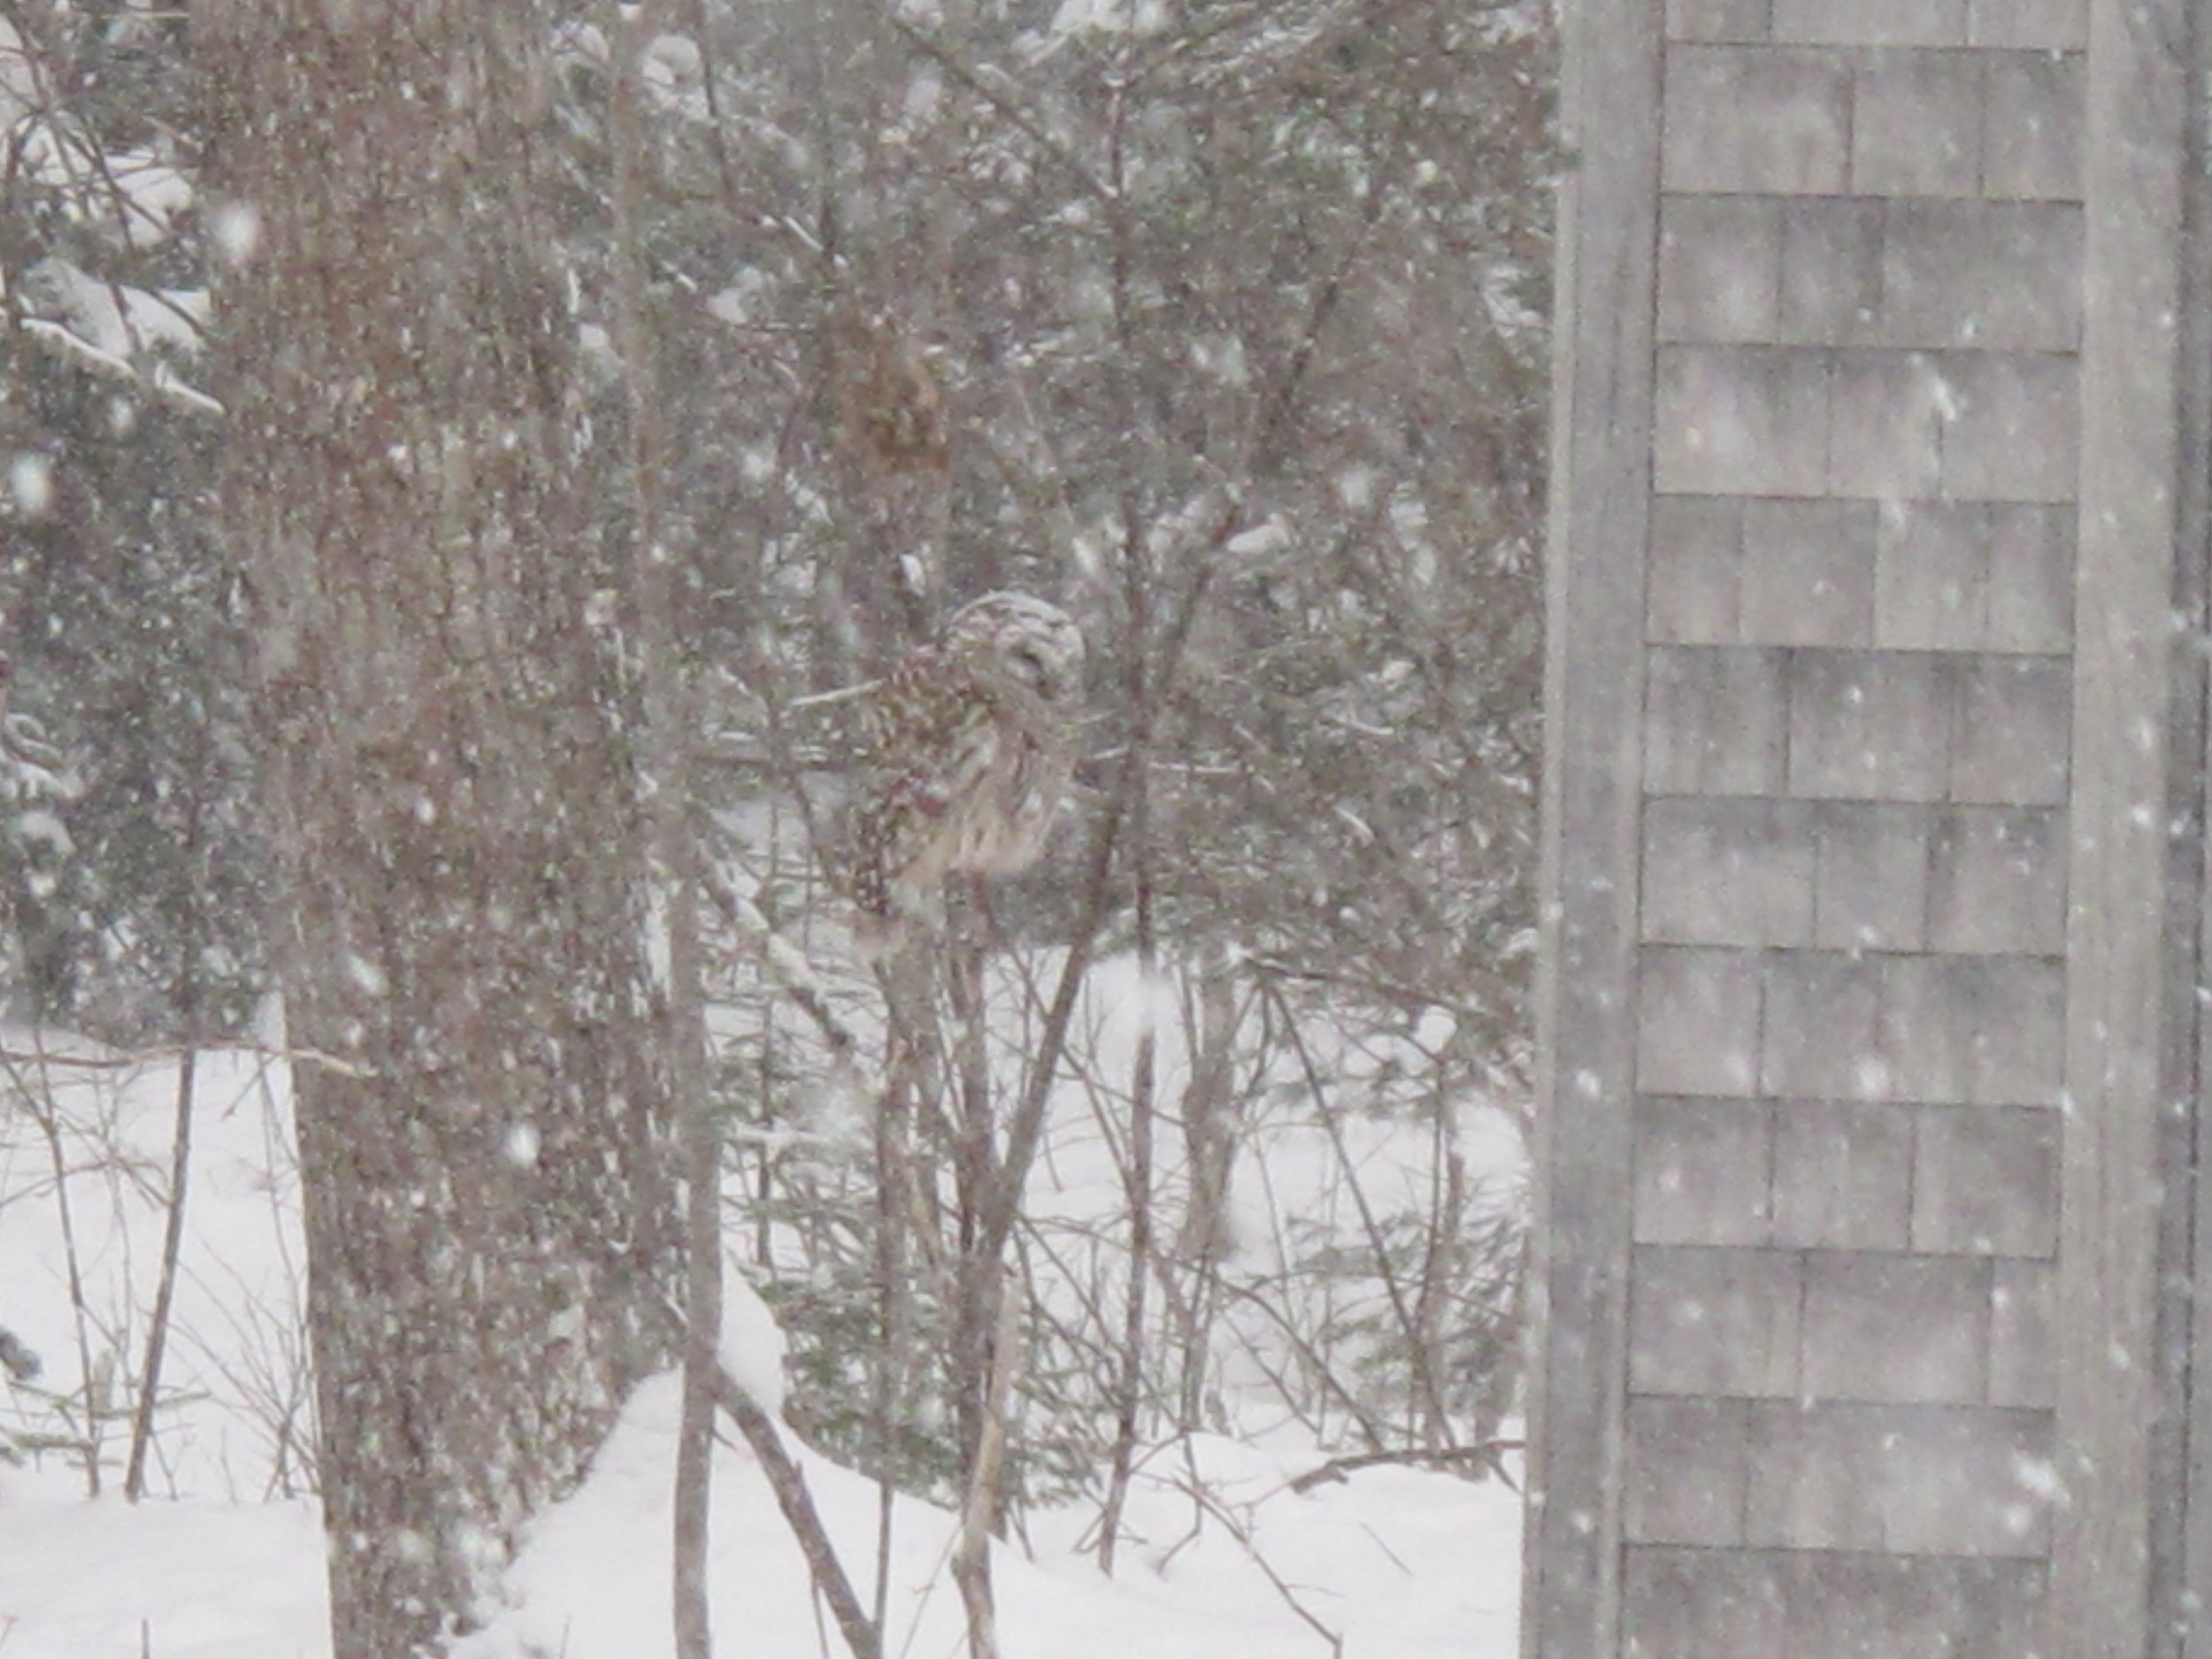 The owl hunting by the shed a few days earlier.